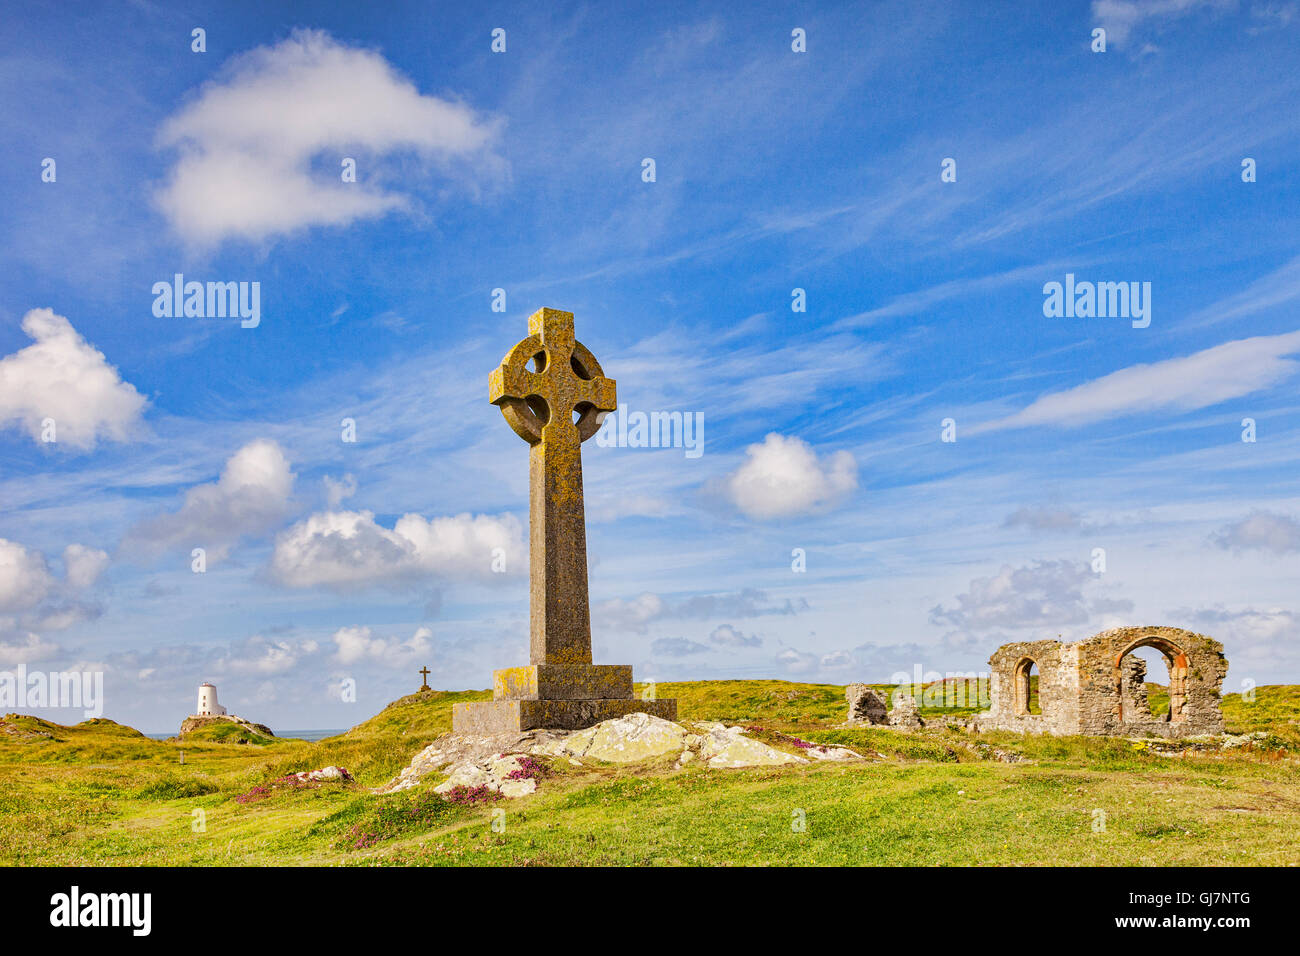 Llanddwyn Island, with the Old Lighthouse, a Celtic Cross and the Church of St Dwynwen, Anglesey, Wales, UK - Stock Image